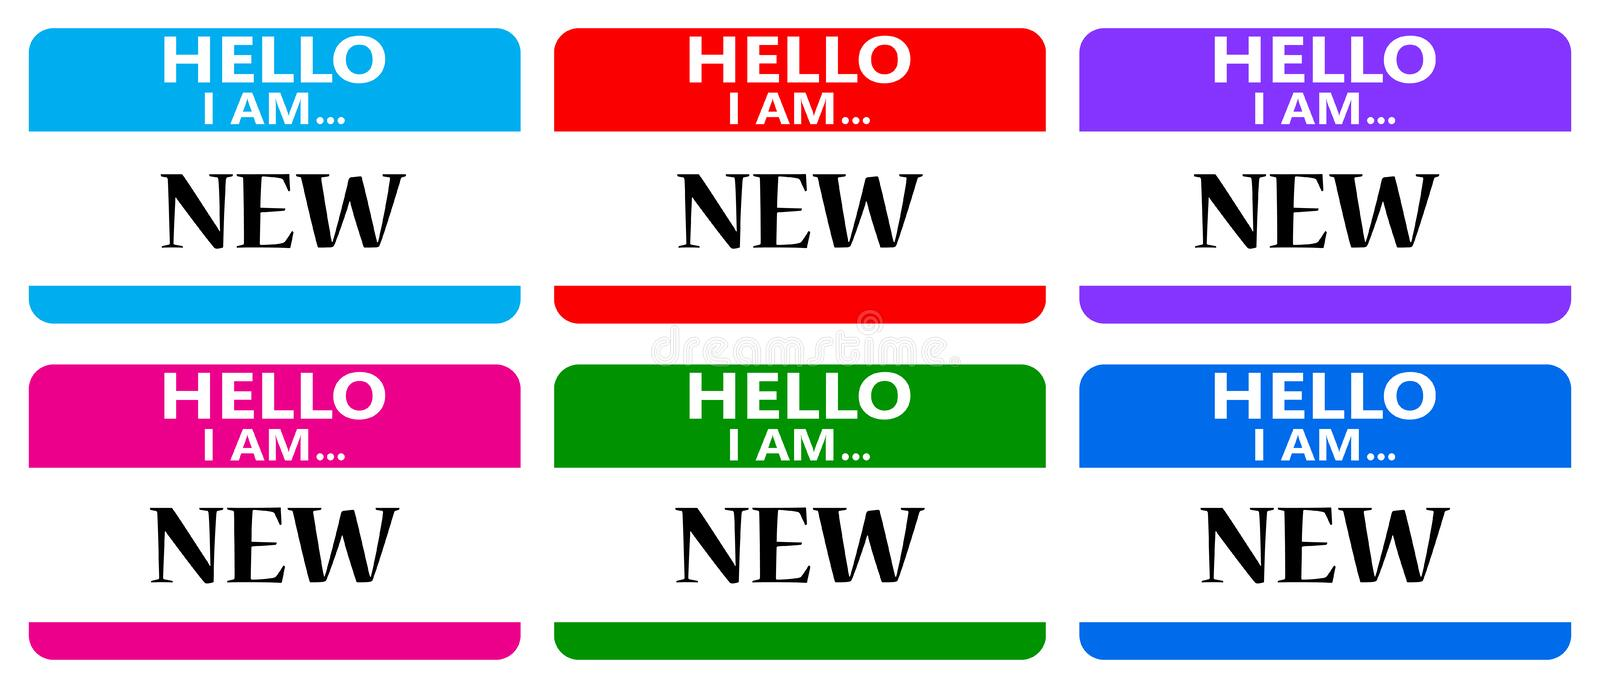 Hello i am new name tags vector illustration